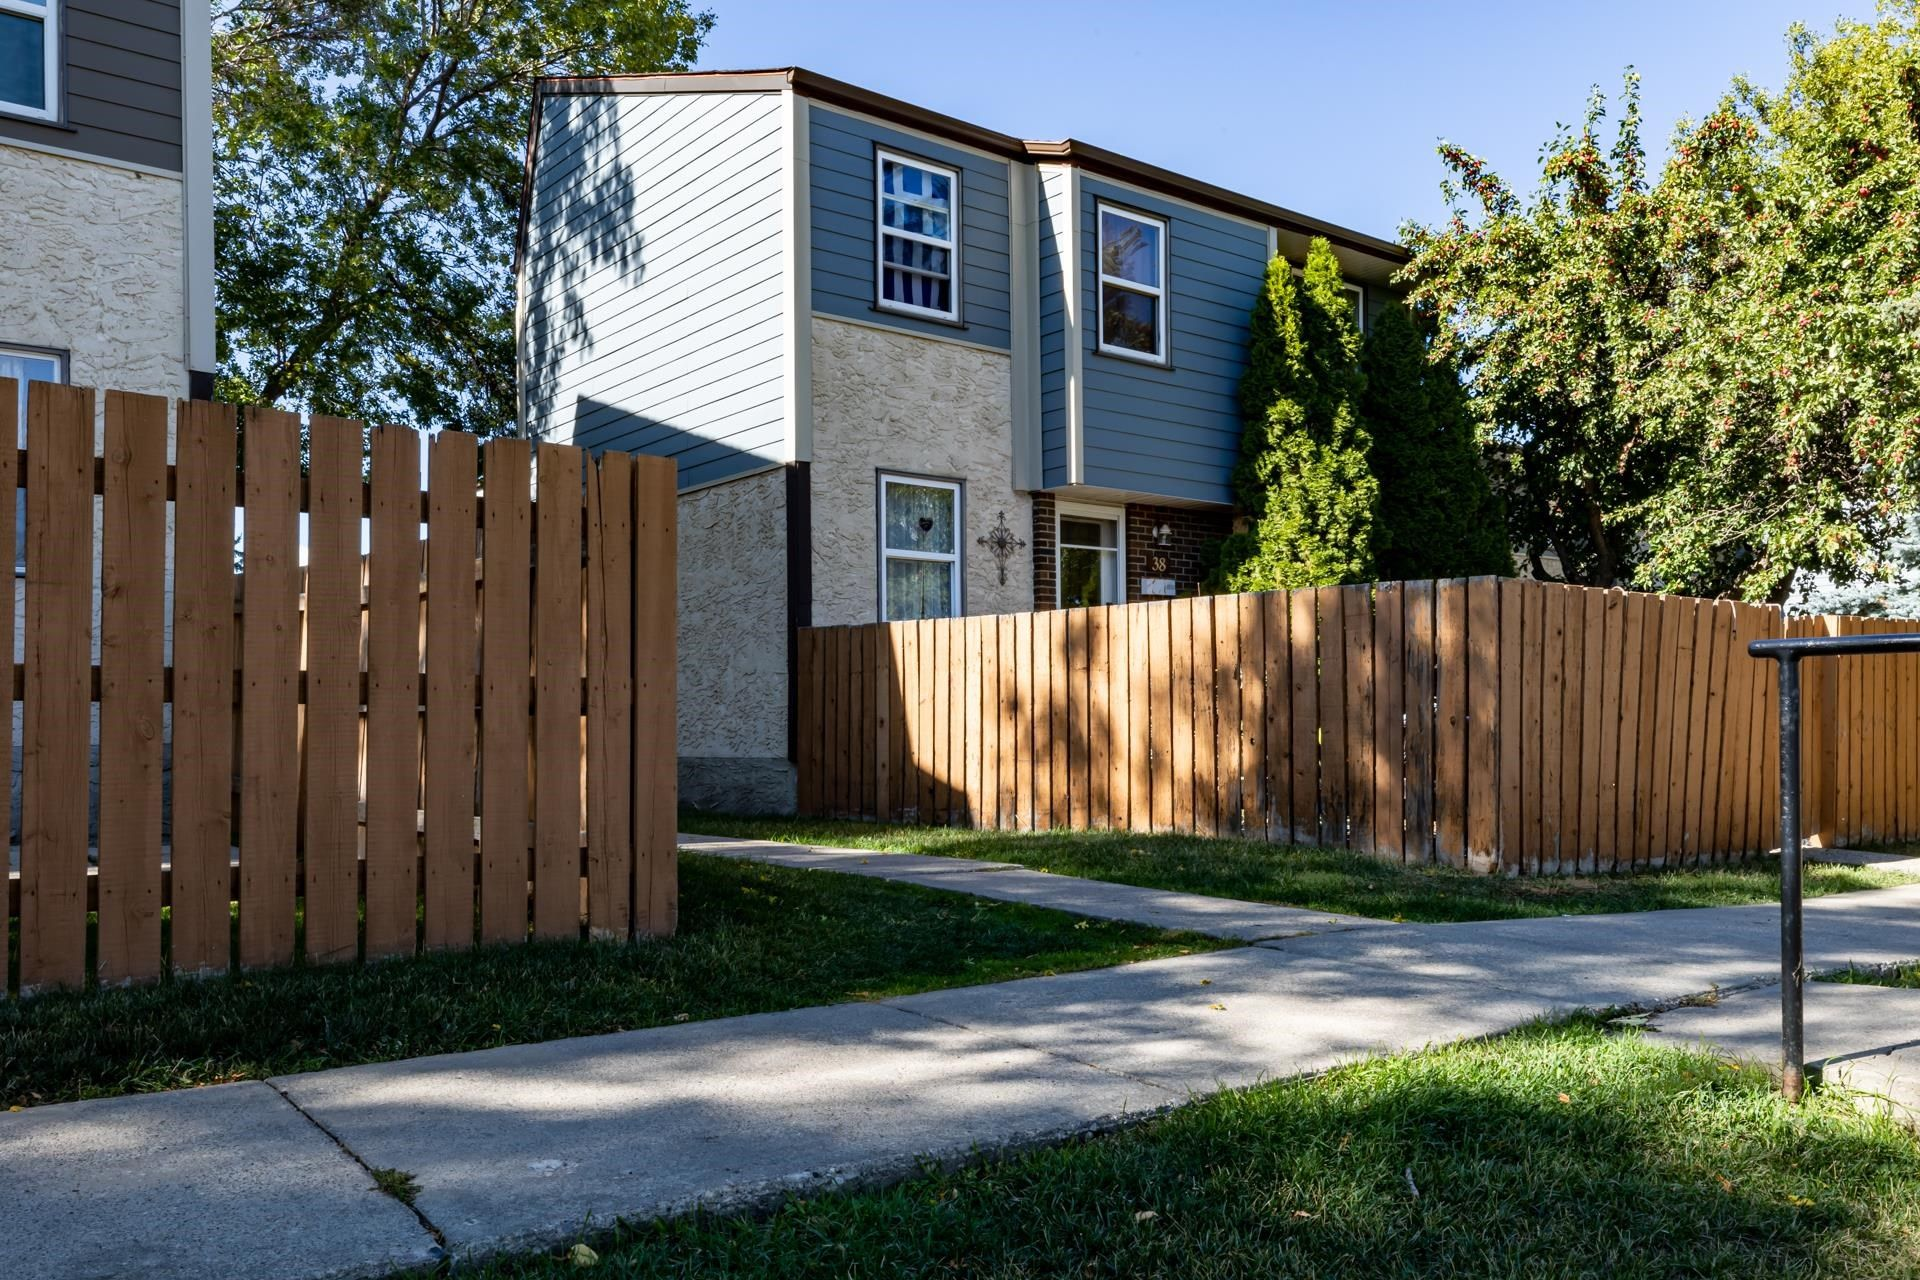 Main Photo: 38 WILLOWDALE Place NW in Edmonton: Zone 20 Townhouse for sale : MLS®# E4263337